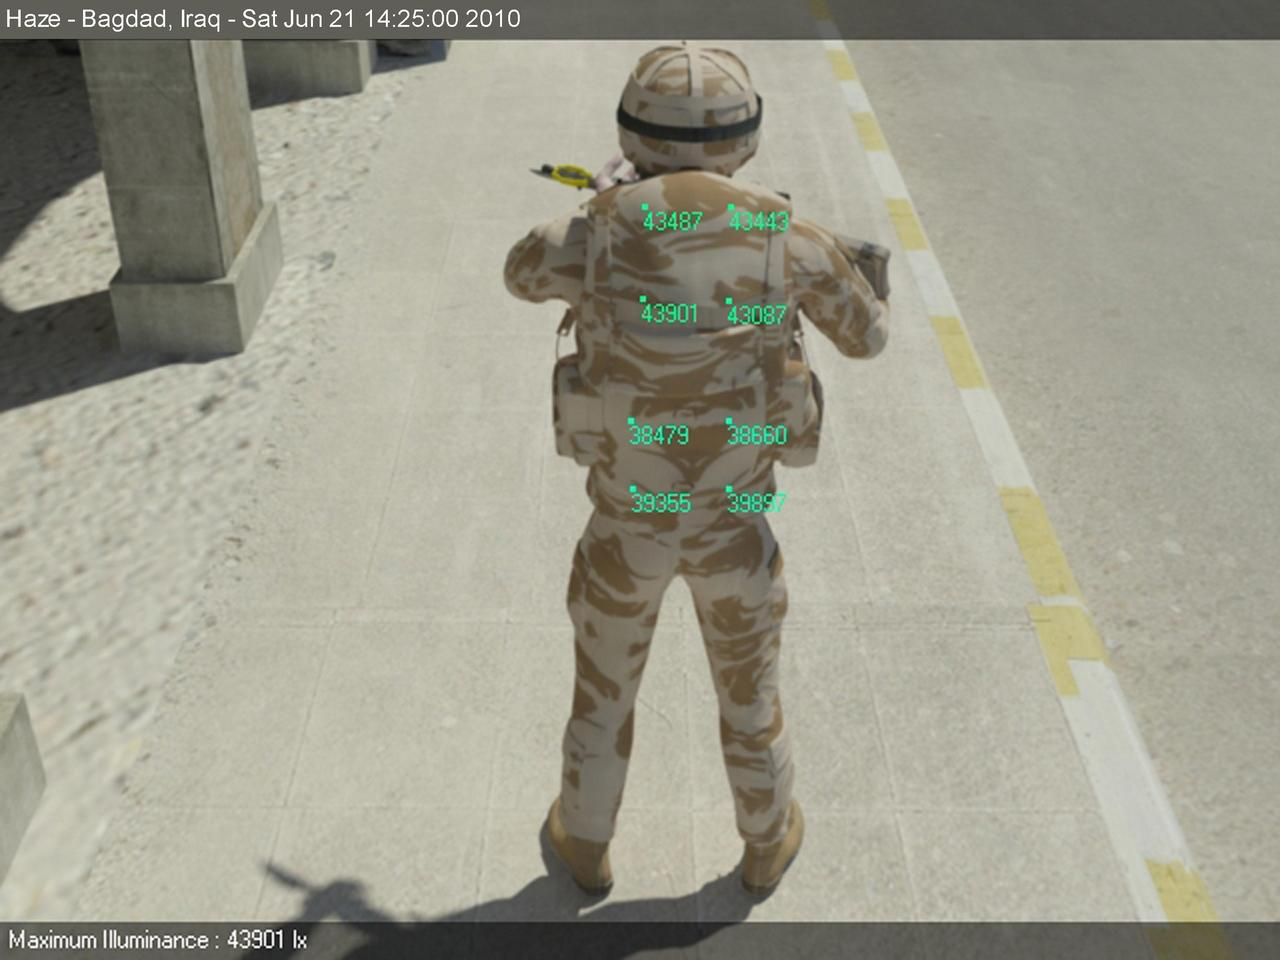 A soldier in a fictitious but realistic urban, desert environment, with superimposed numbers representing readings for anticipated sunlight (Image: EPSRC)